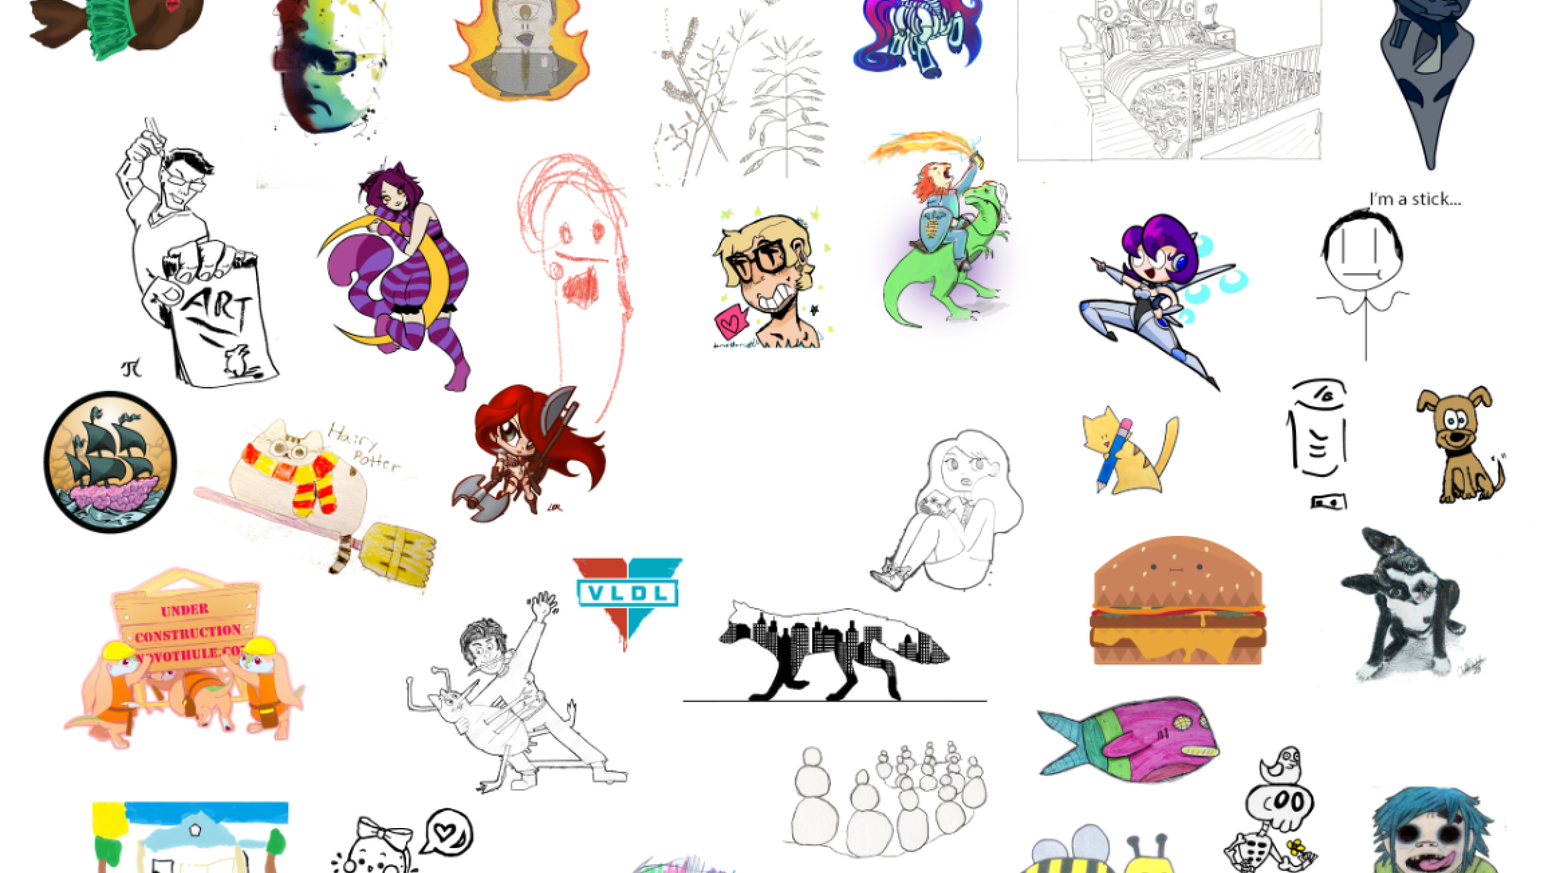 Add your art to a collaborative drawing for $1!